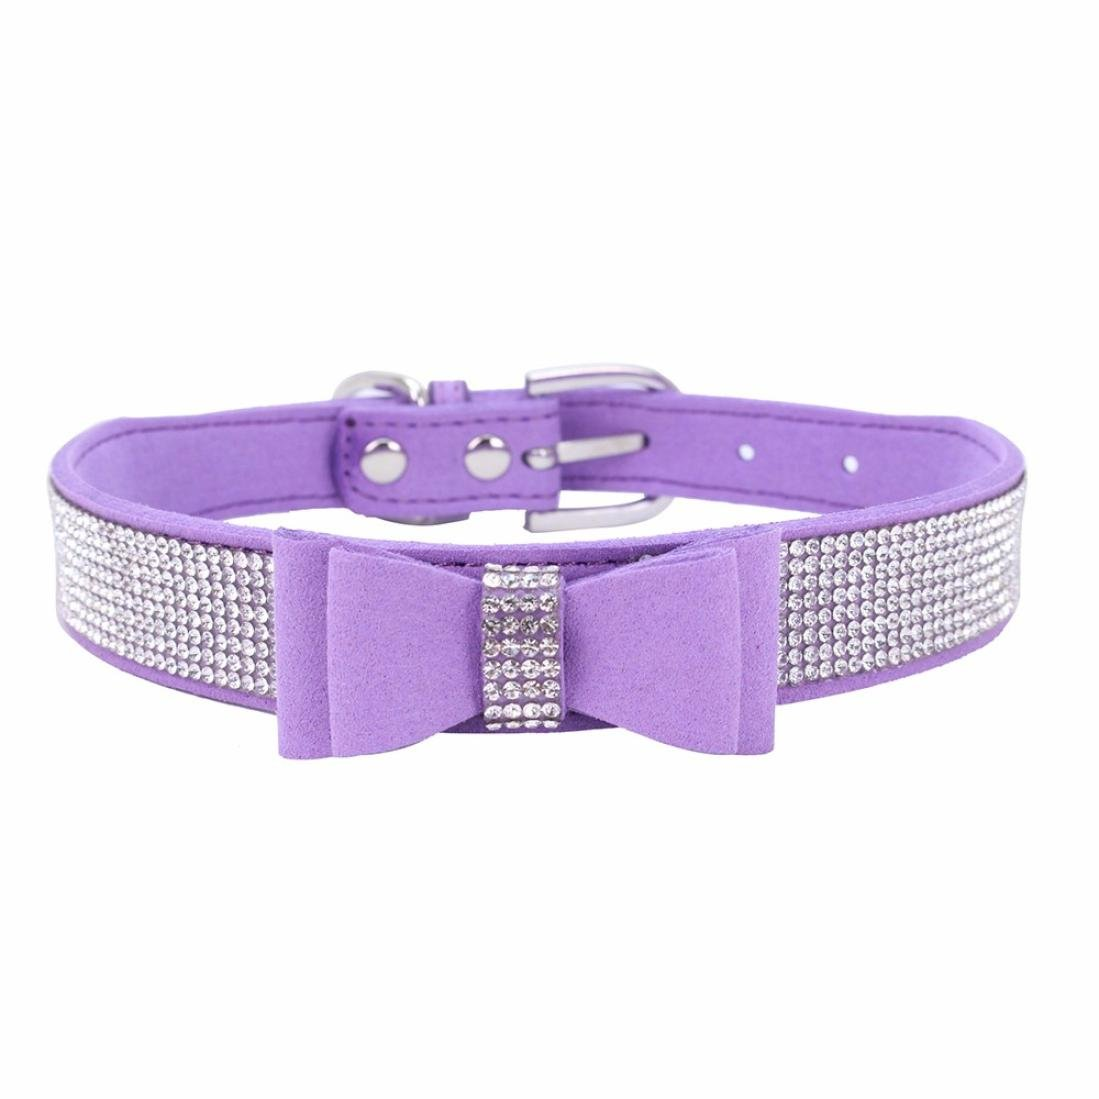 Axchongery Pet Collars,Adjustable Dog Neck Strap Bowknot Diamond Puppy Soft Necklace